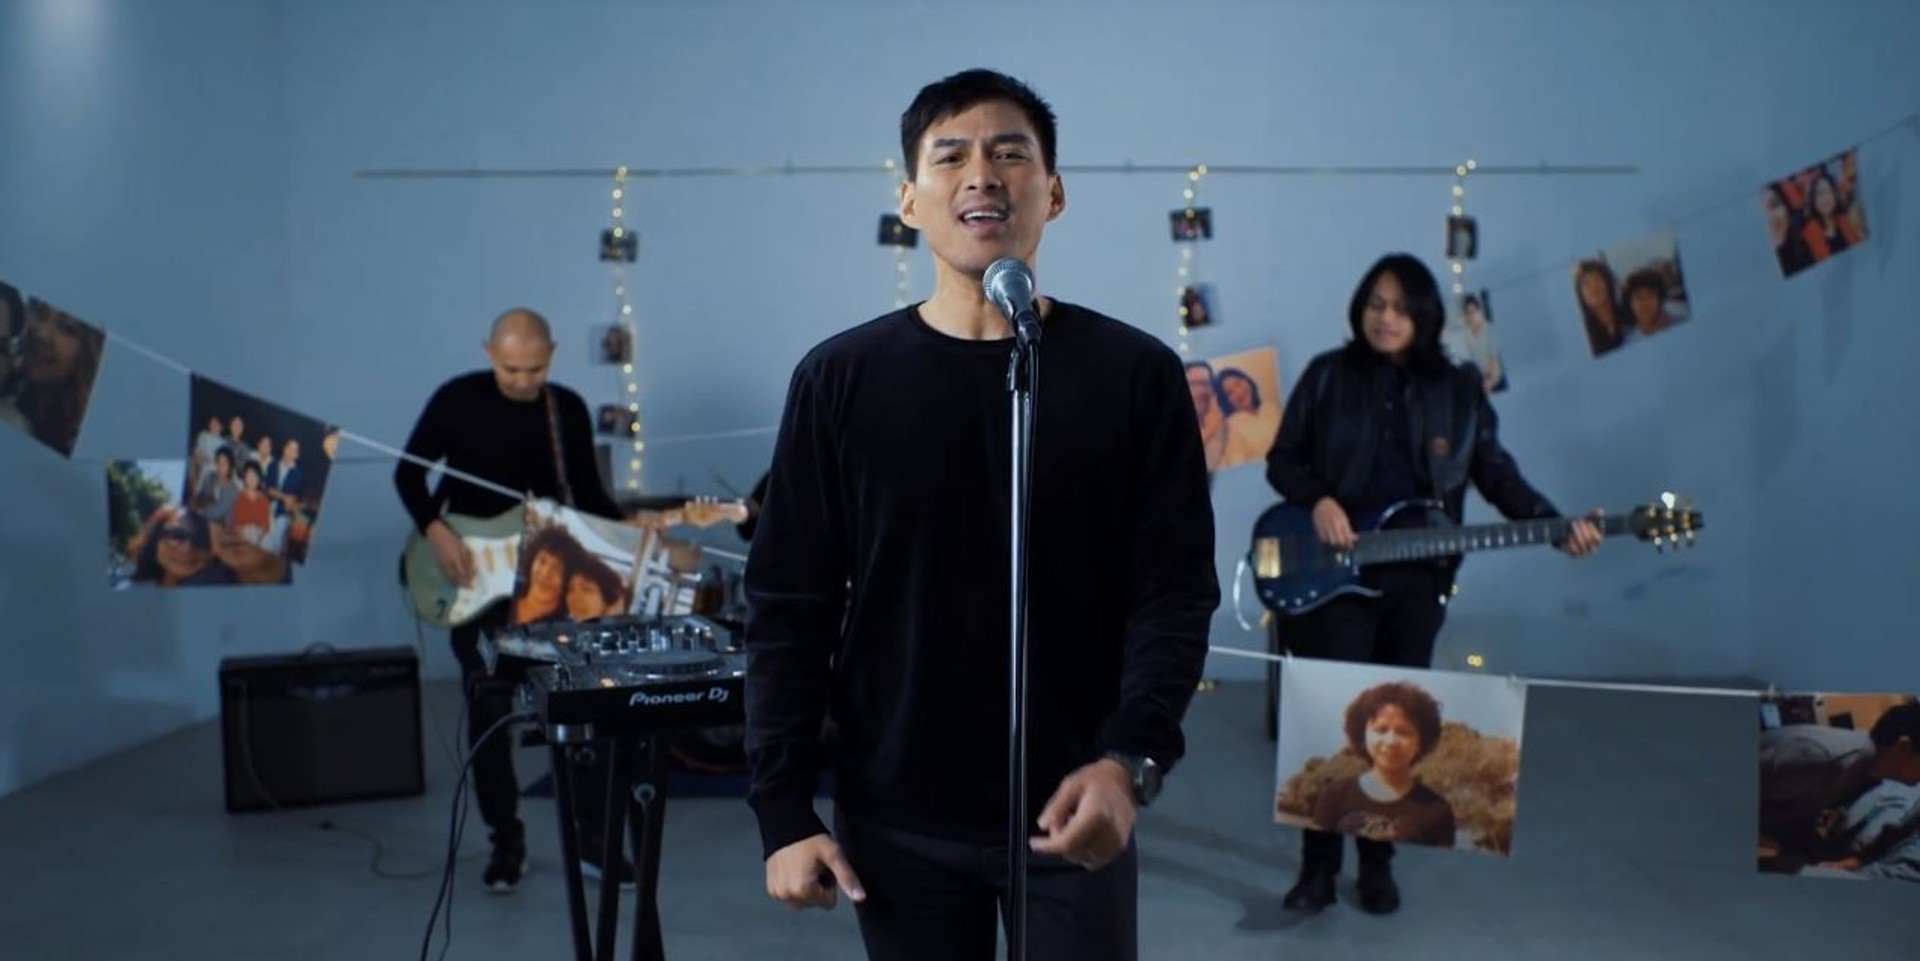 Guji aims to raise cancer awareness with 'Be Alright' music video